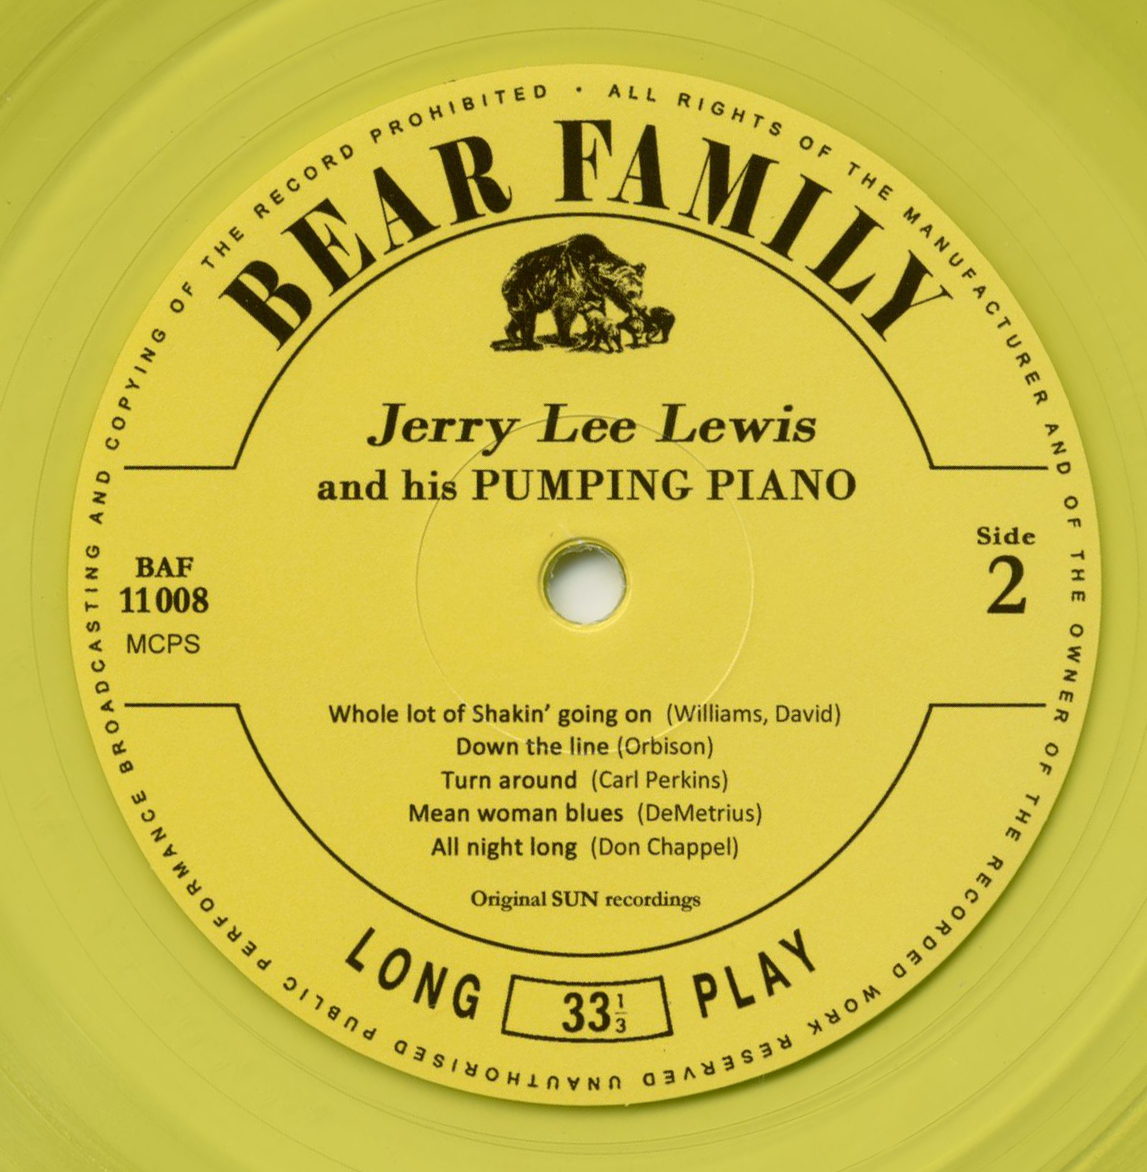 Jerry Lee Lewis LP (10 Inch): Jerry Lee Lewis And His